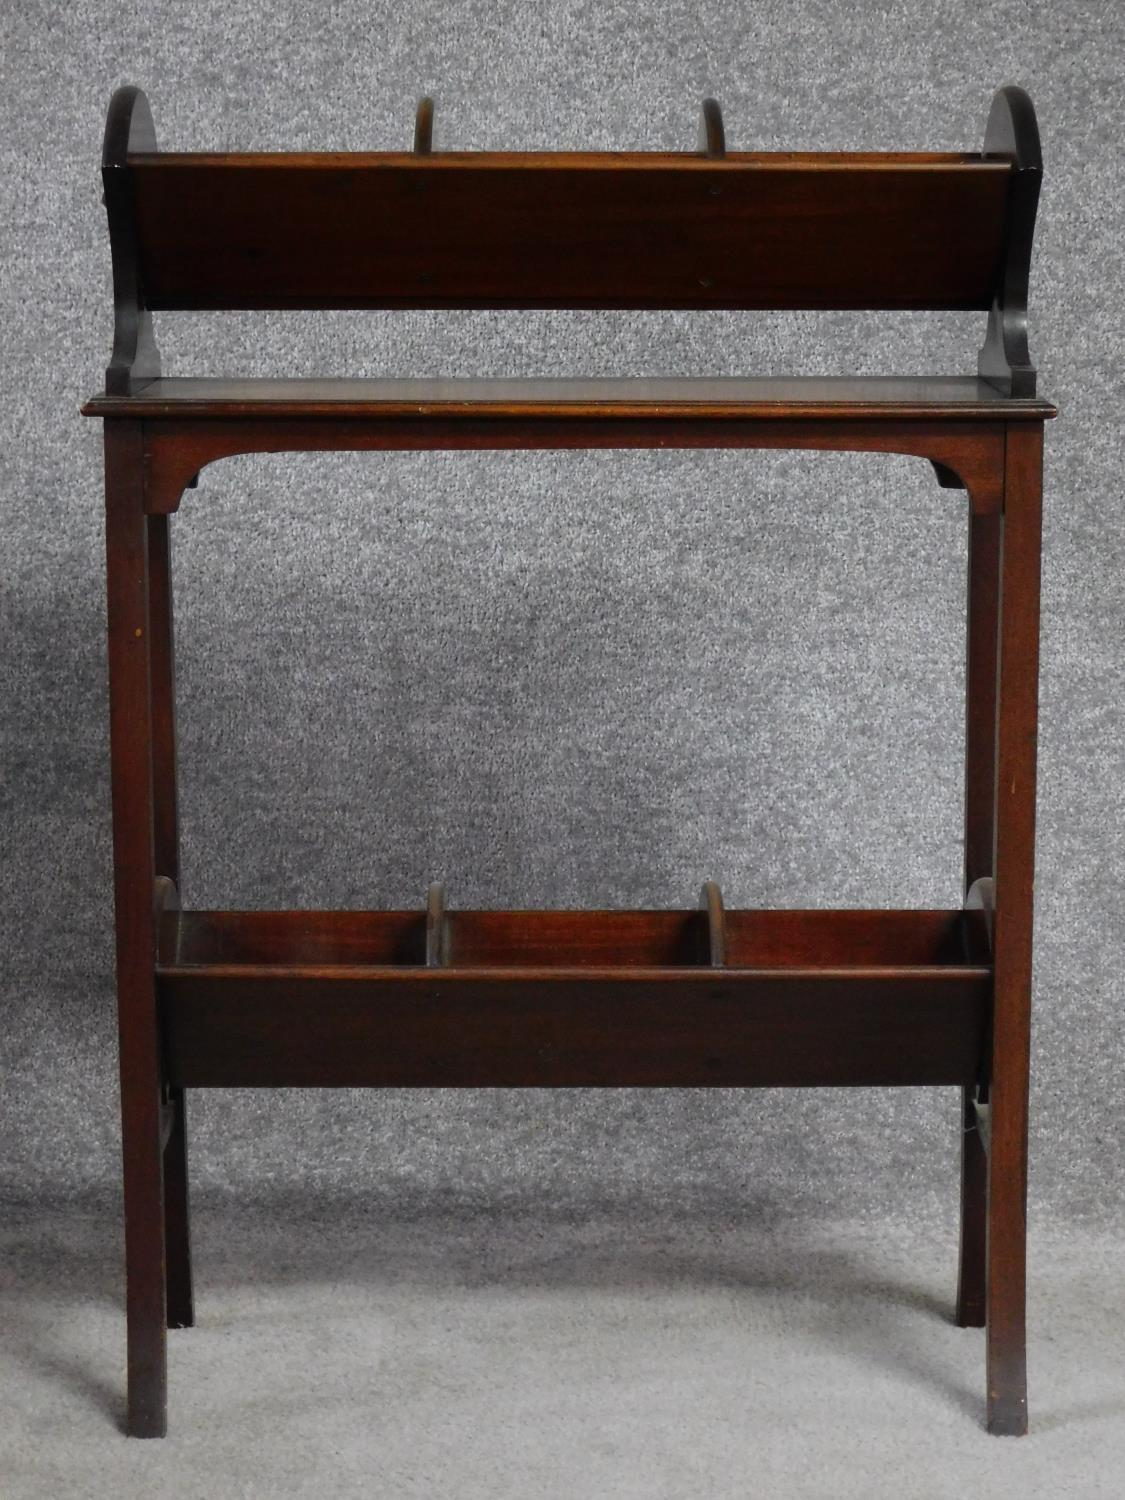 A late Victorian mahogany book trough with under tier, raised on square stretchered swept